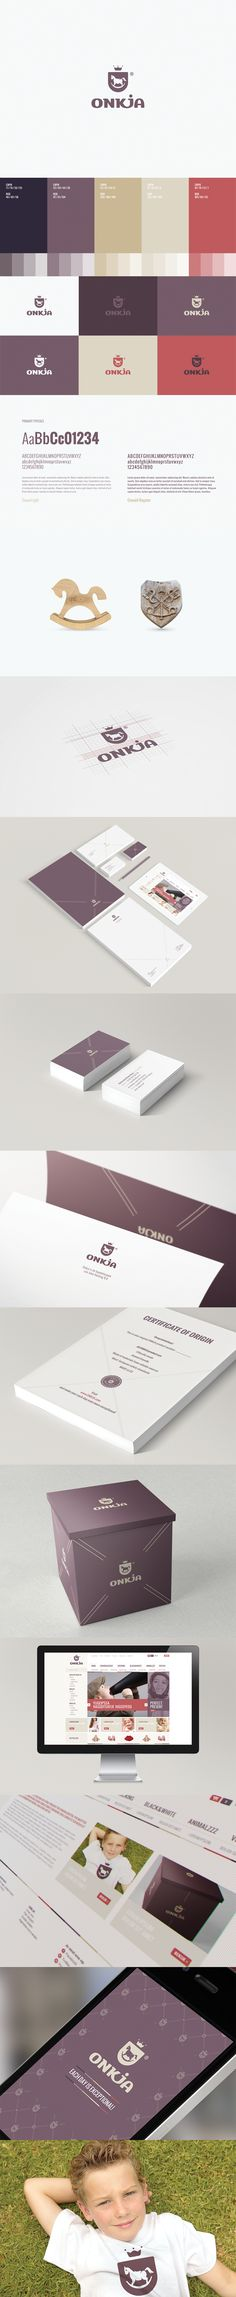 Onkja by Motyf , via Behance